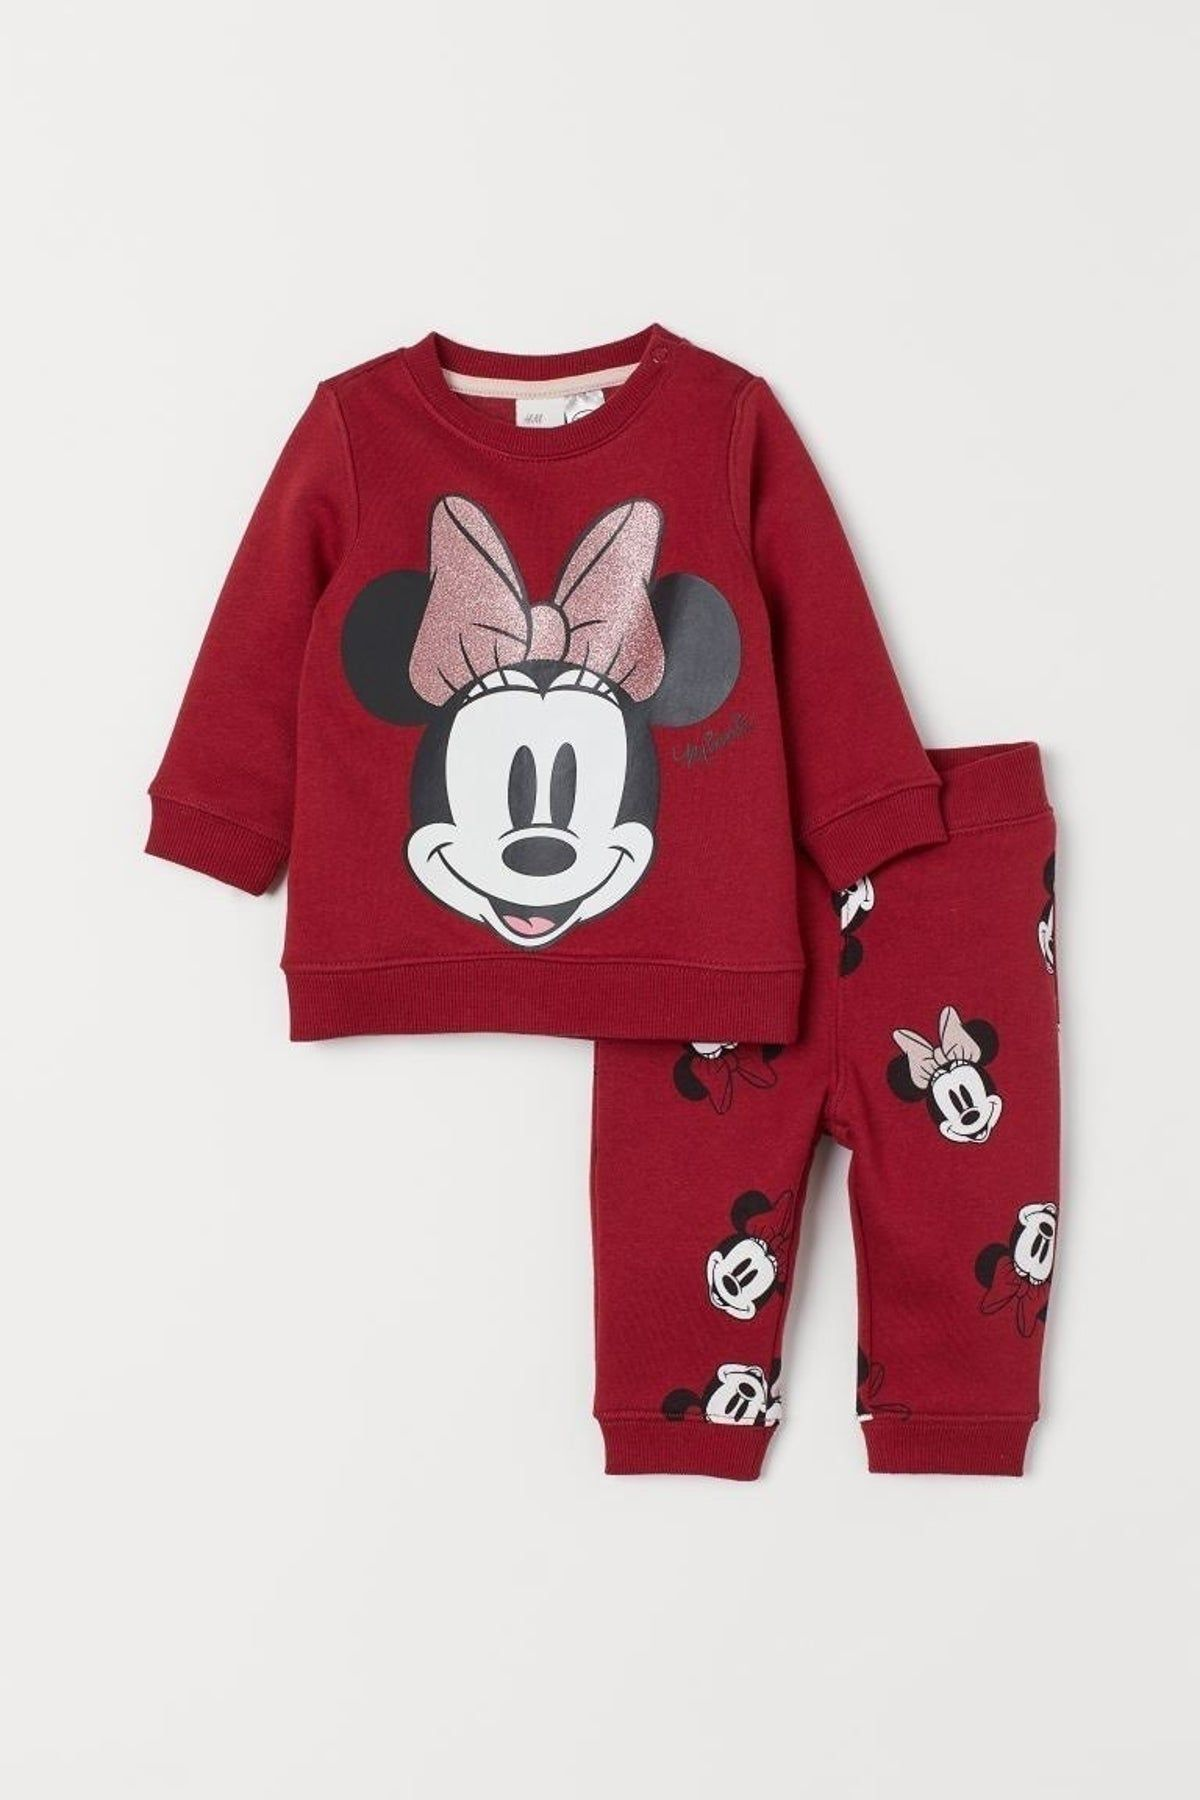 H Amp M Baby Minnie Mouse Sweatpants Set Baby Girl Pajamas Baby Girl Outfits Newborn Disney Baby Clothes [ 1800 x 1200 Pixel ]